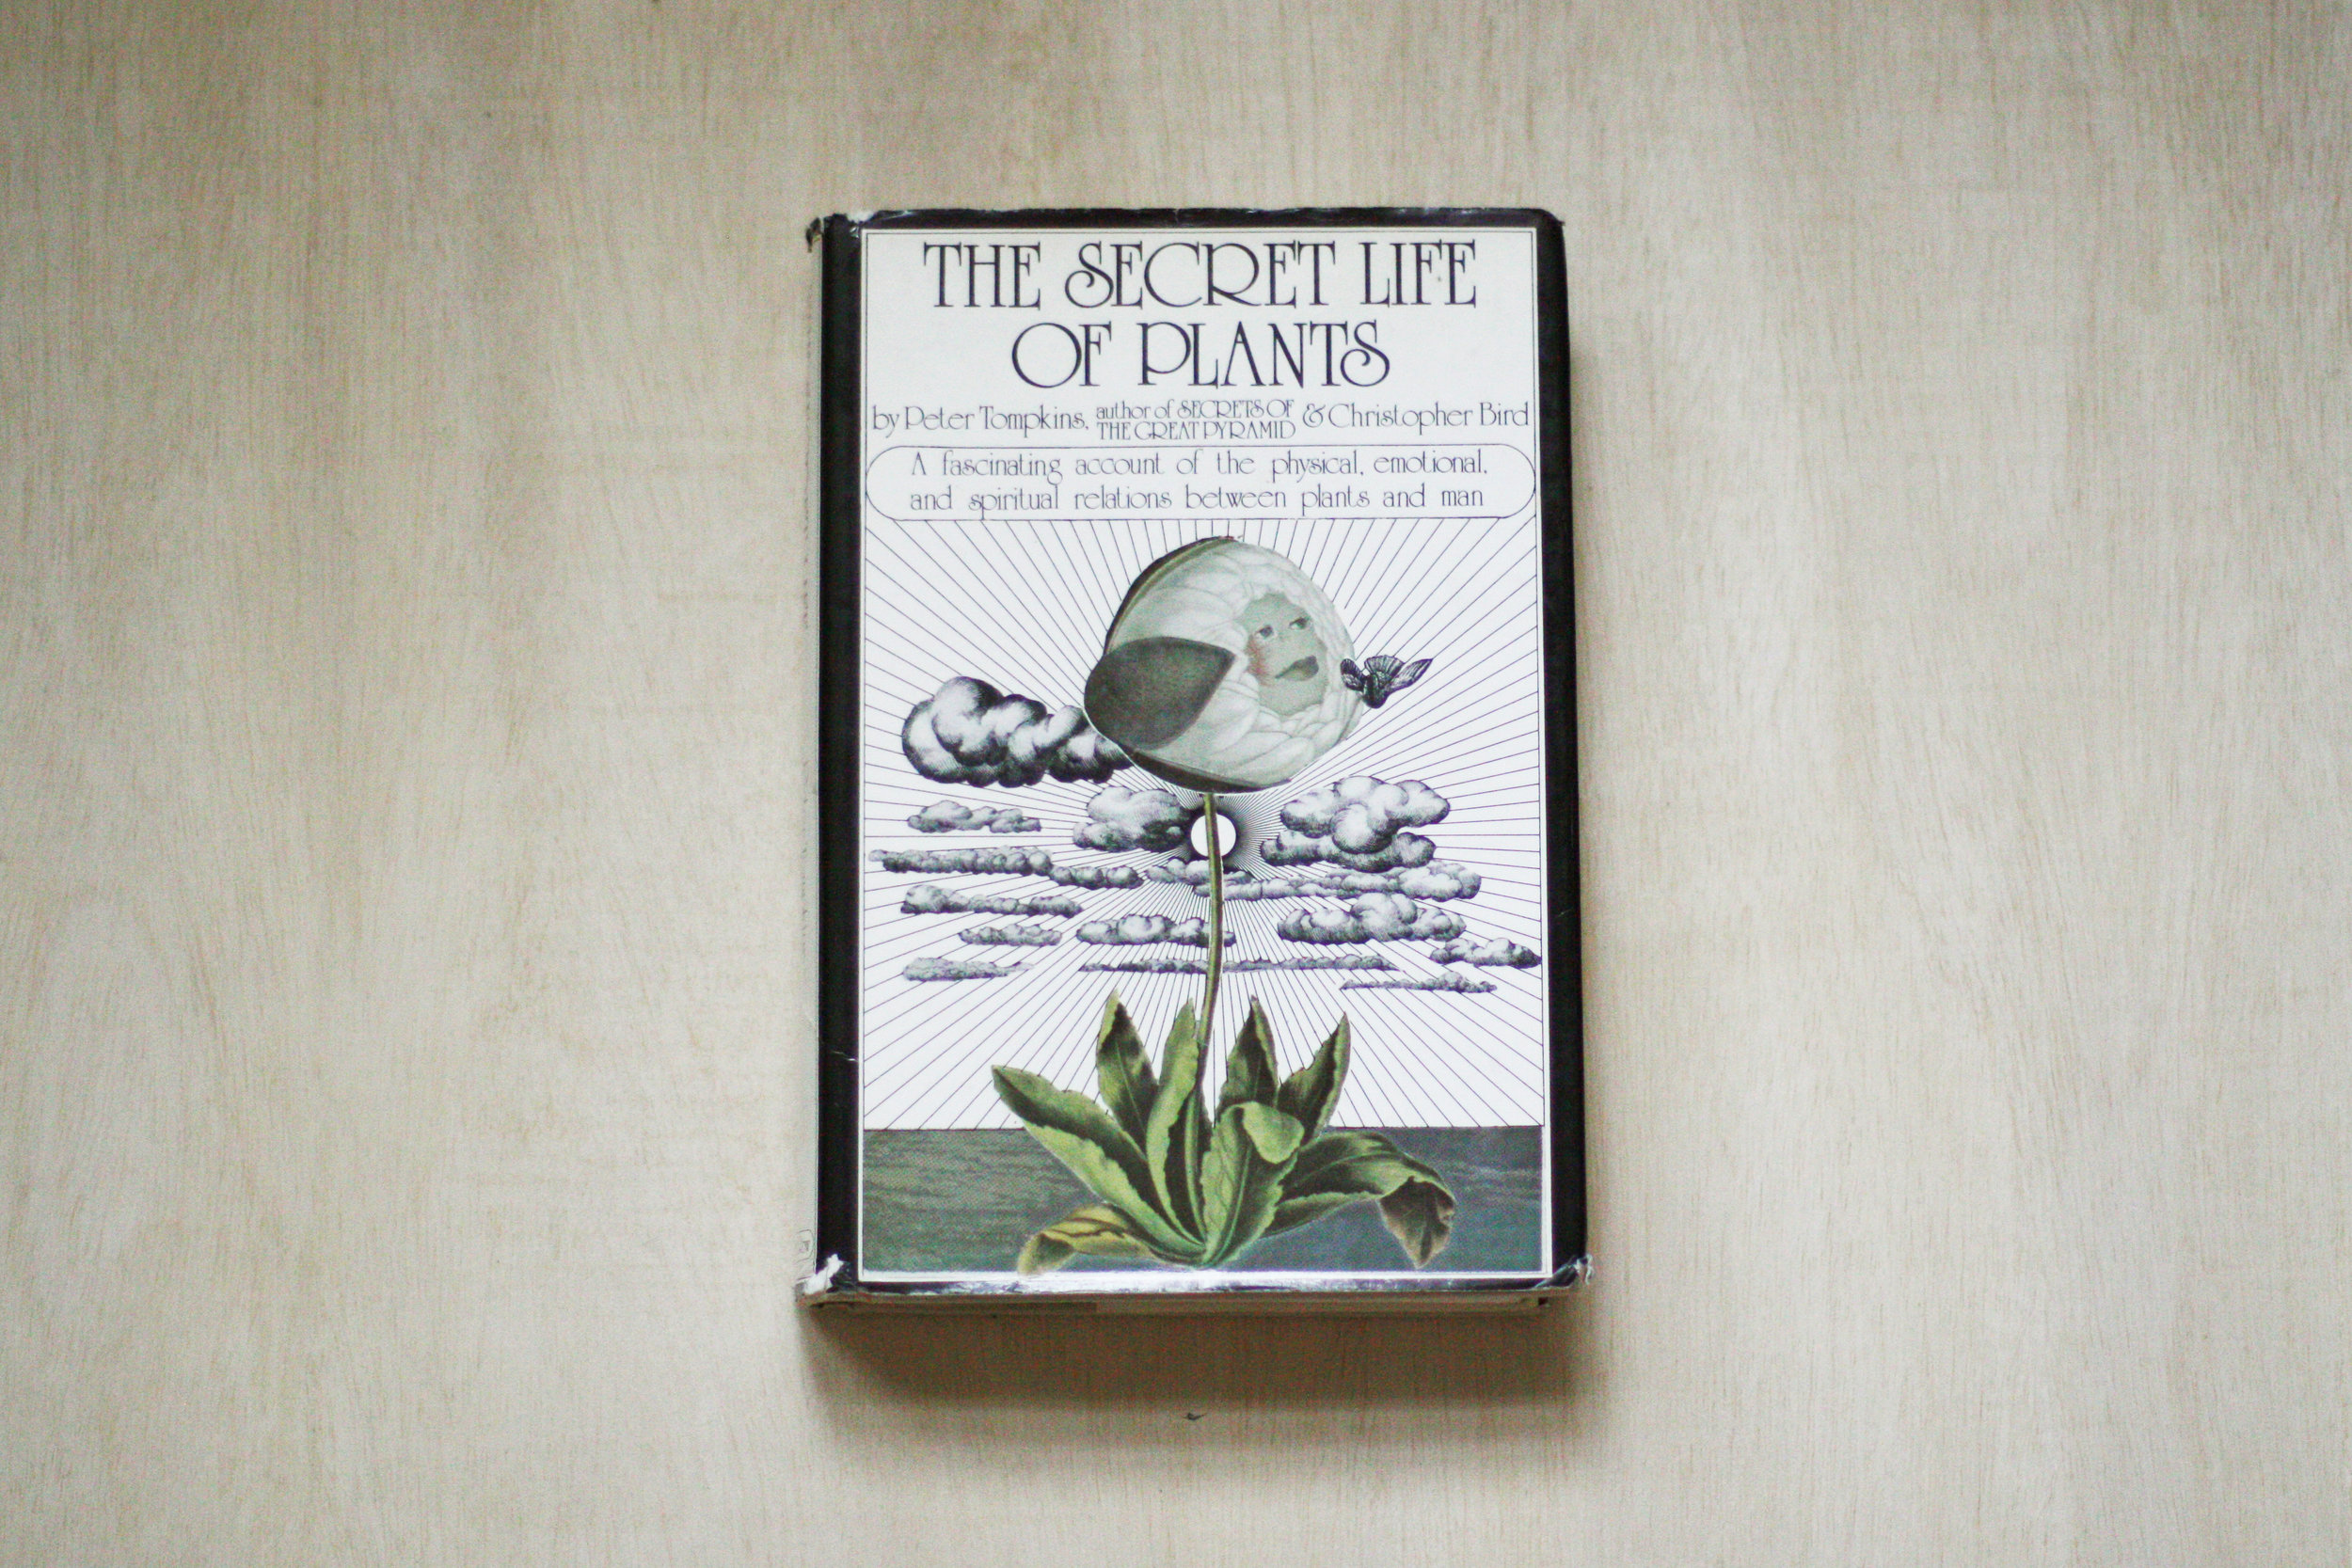 The Secret Life of Plants   by Peter Tompkins and Christopher Bird